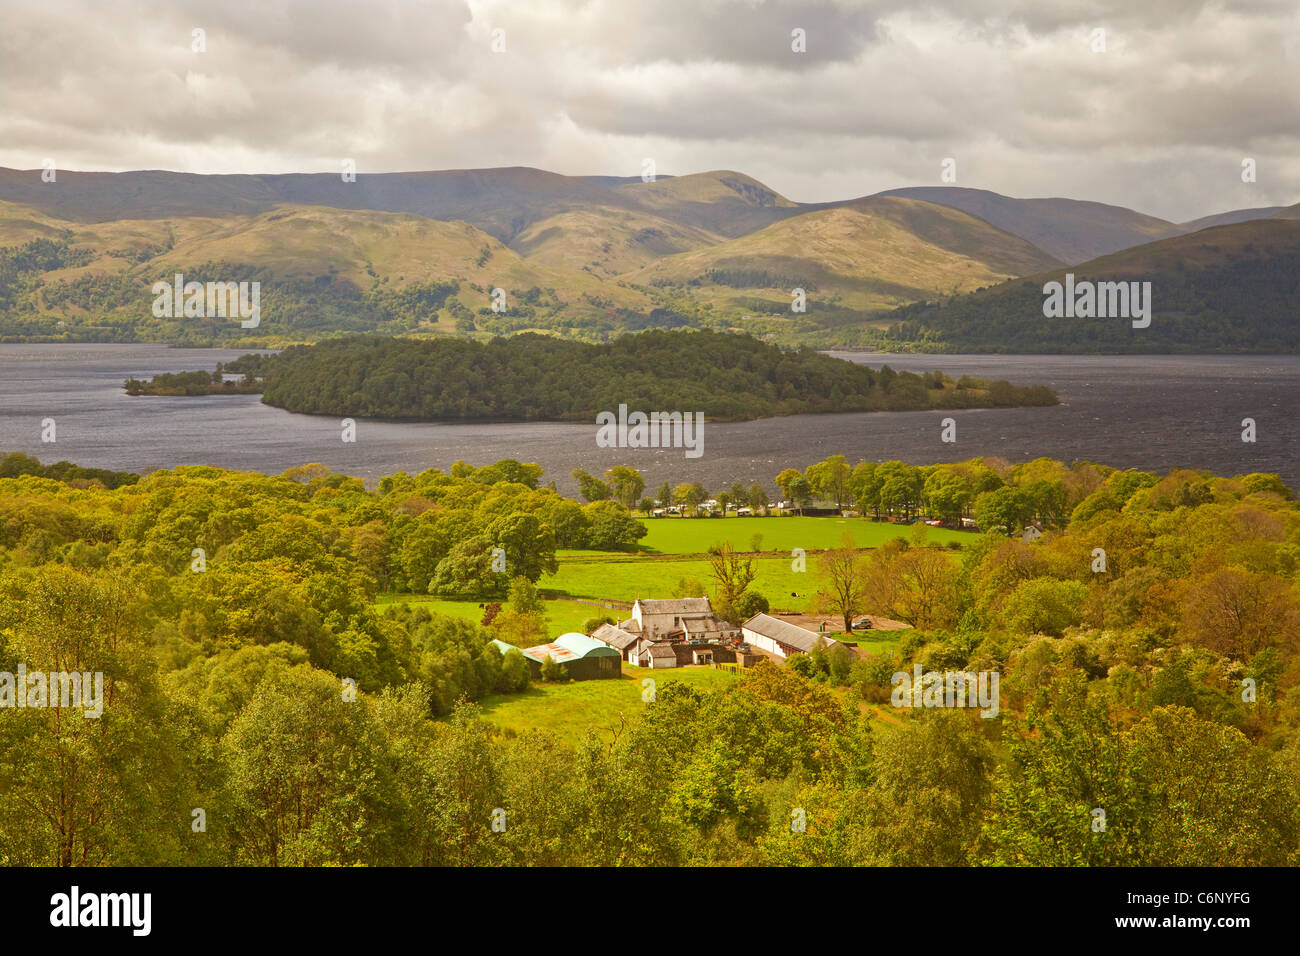 Cashel Farm, Cashel Campsite and the island of Inchlonaing in Loch Lomond. The Luss Hills are in the background. - Stock Image